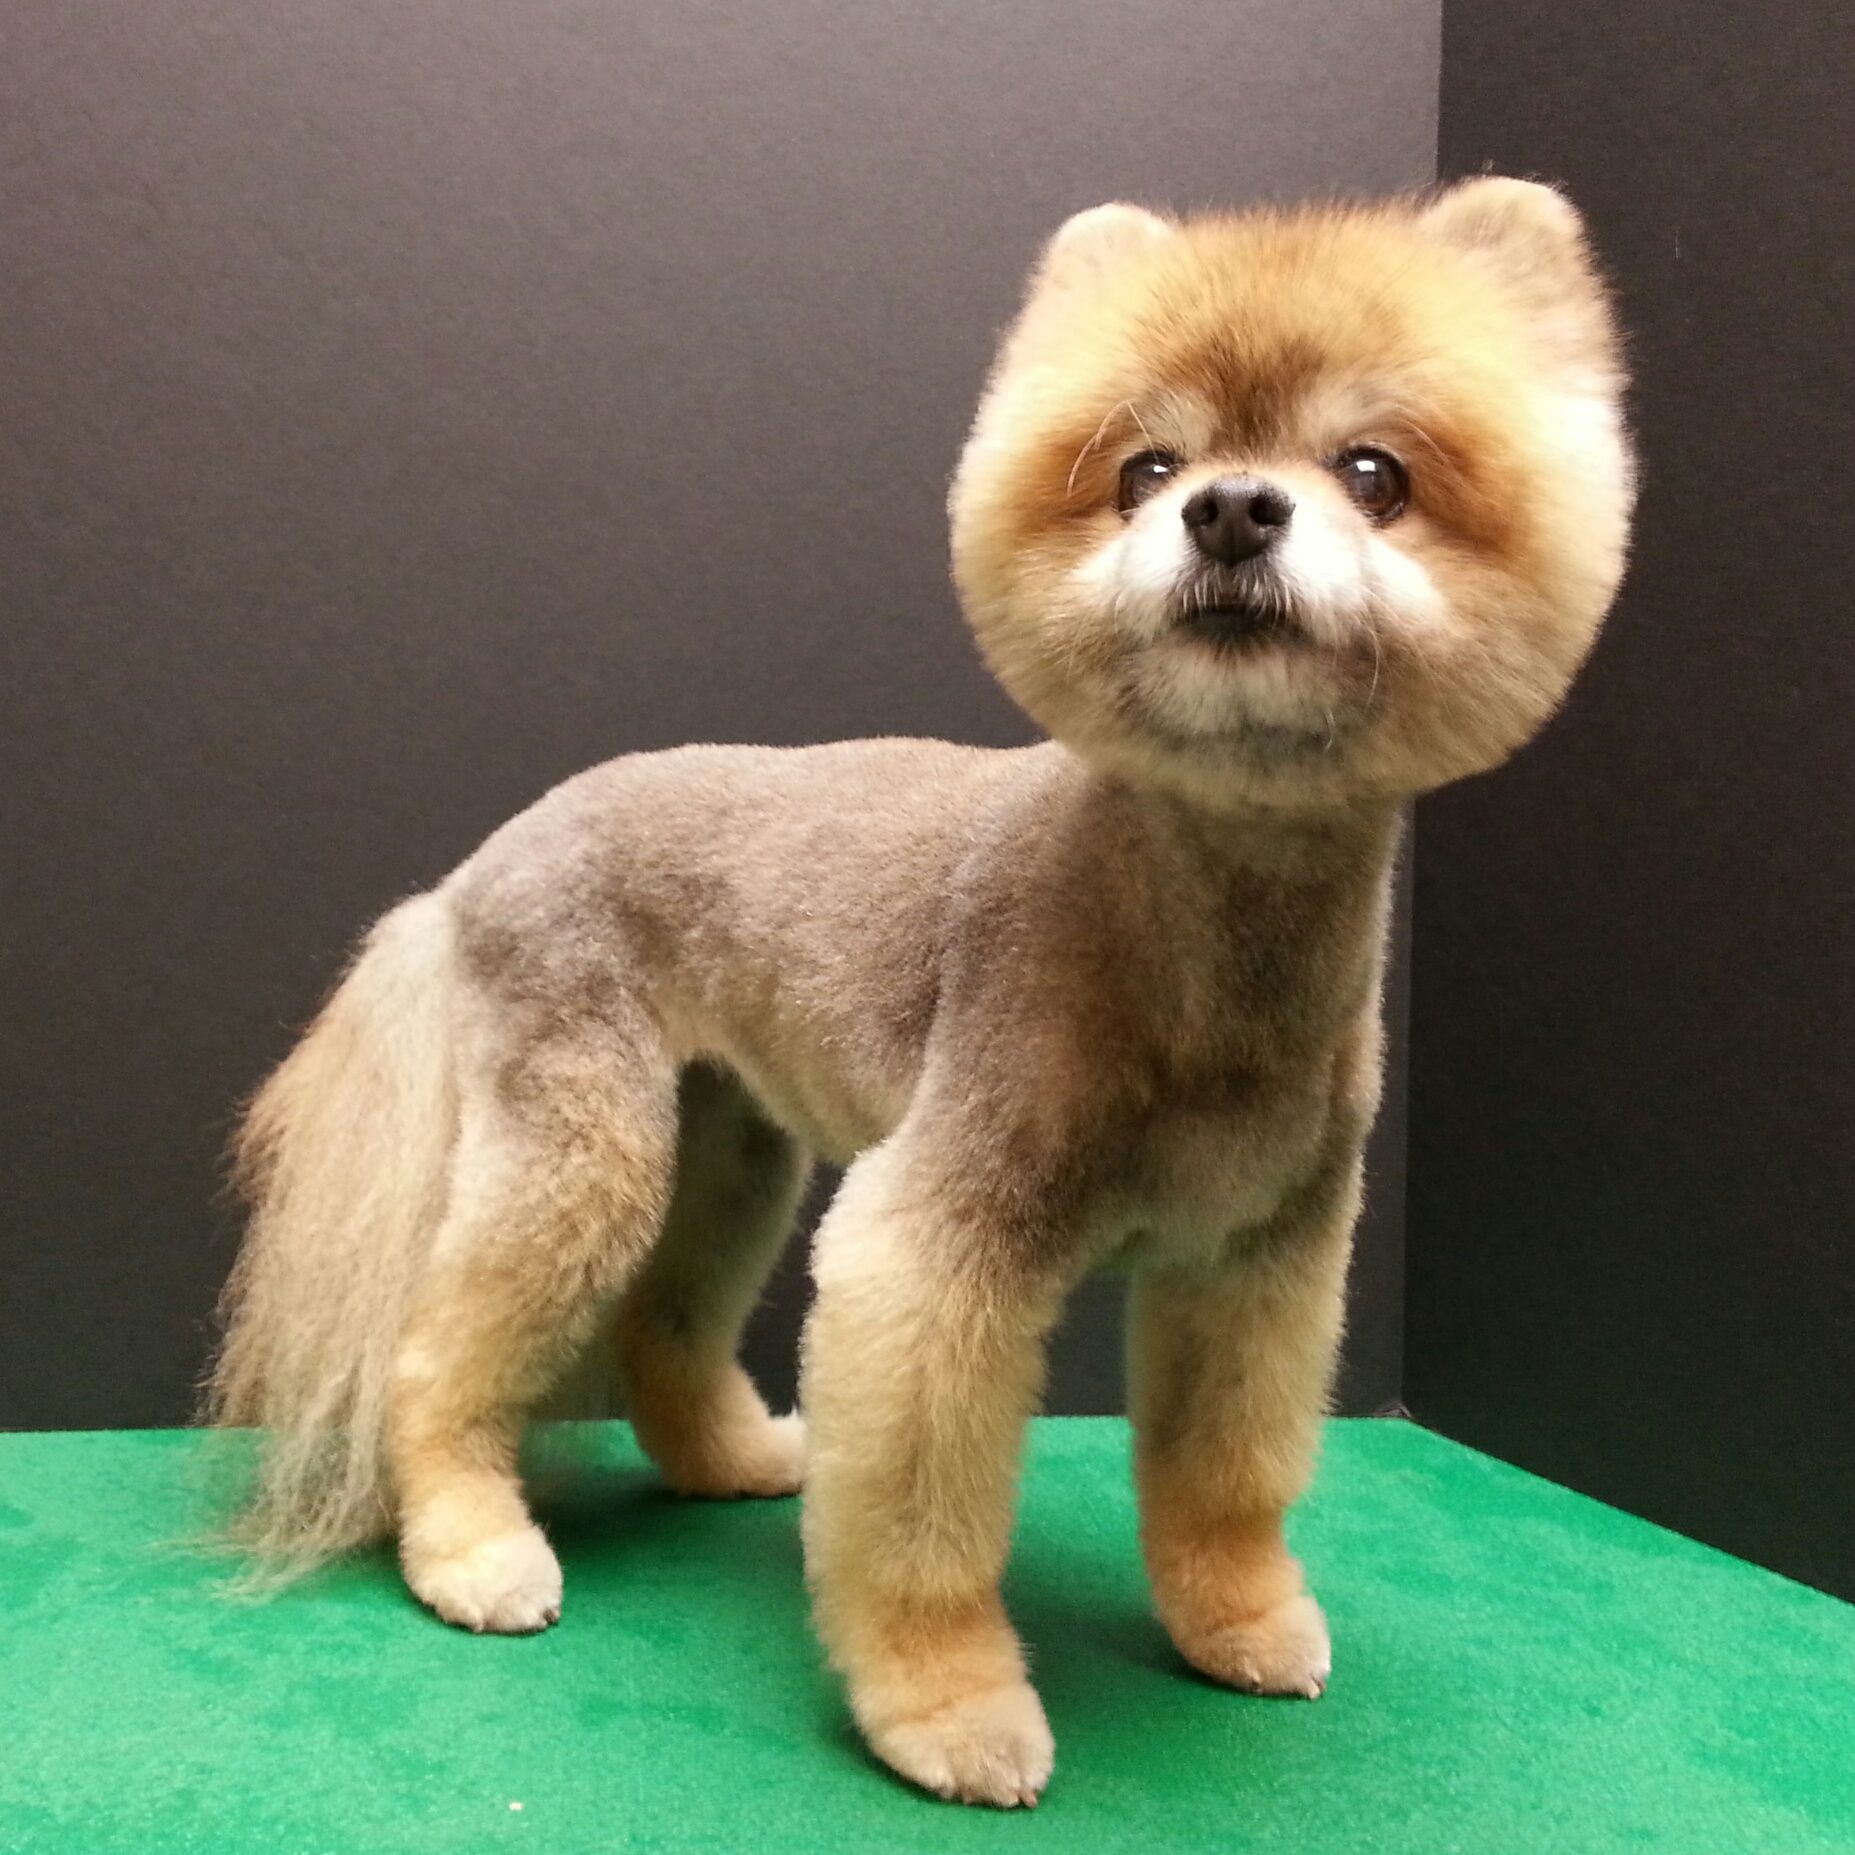 Pomeranian Haircut Pom Grooming Boo Haircut